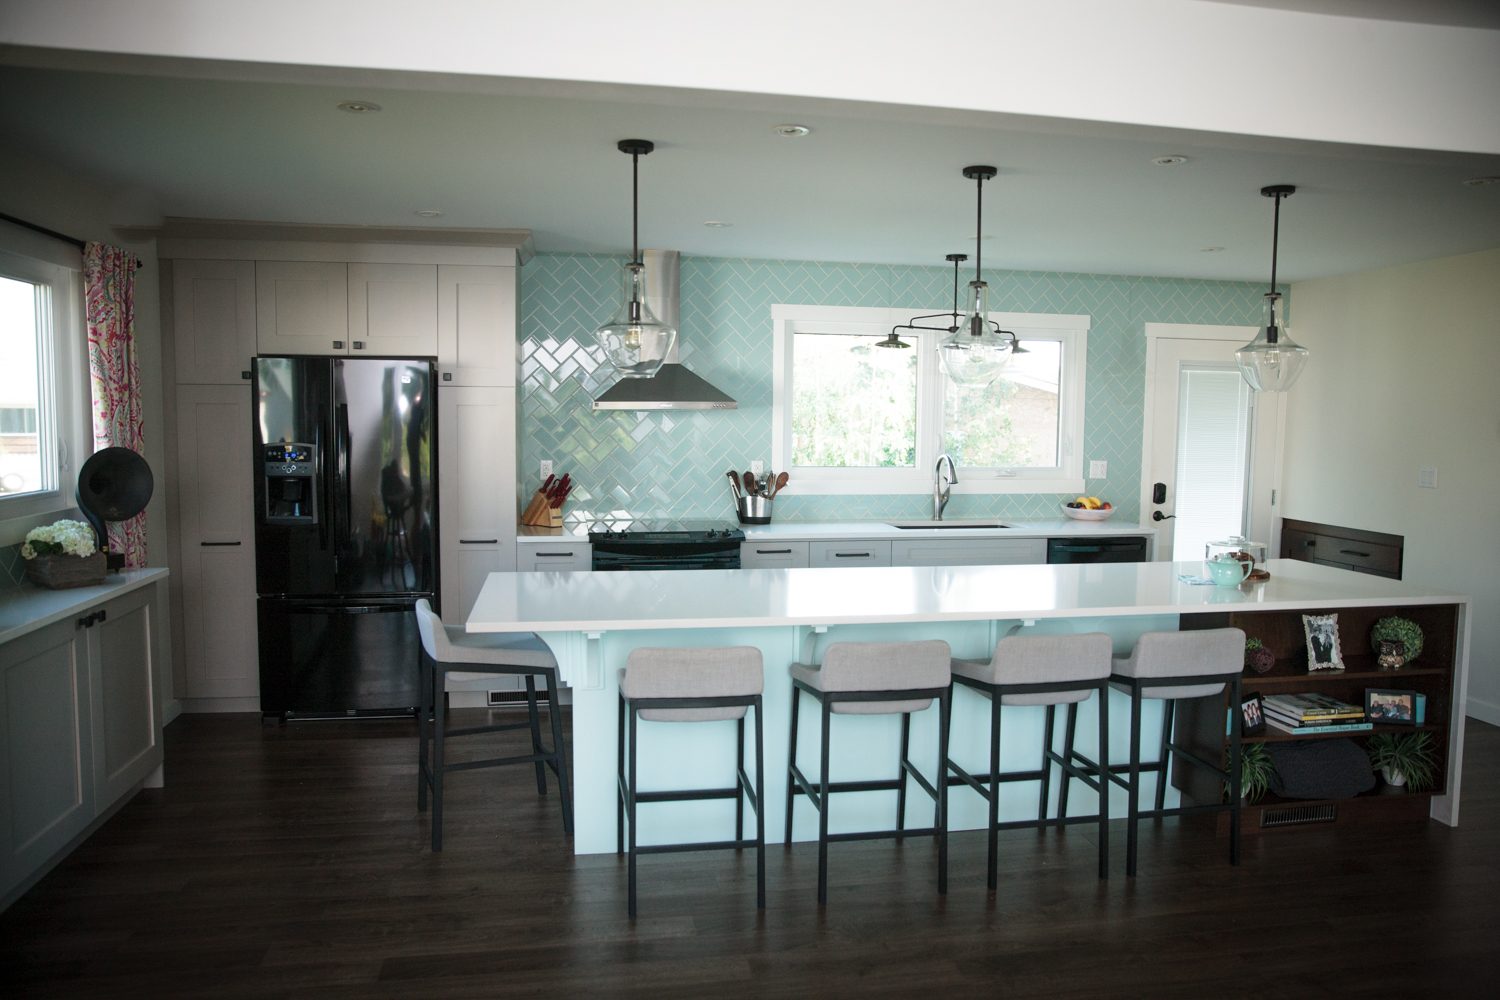 Camrose Kitchen Renovation Locale Designs Interior Design Showroom Custom Cabinetry